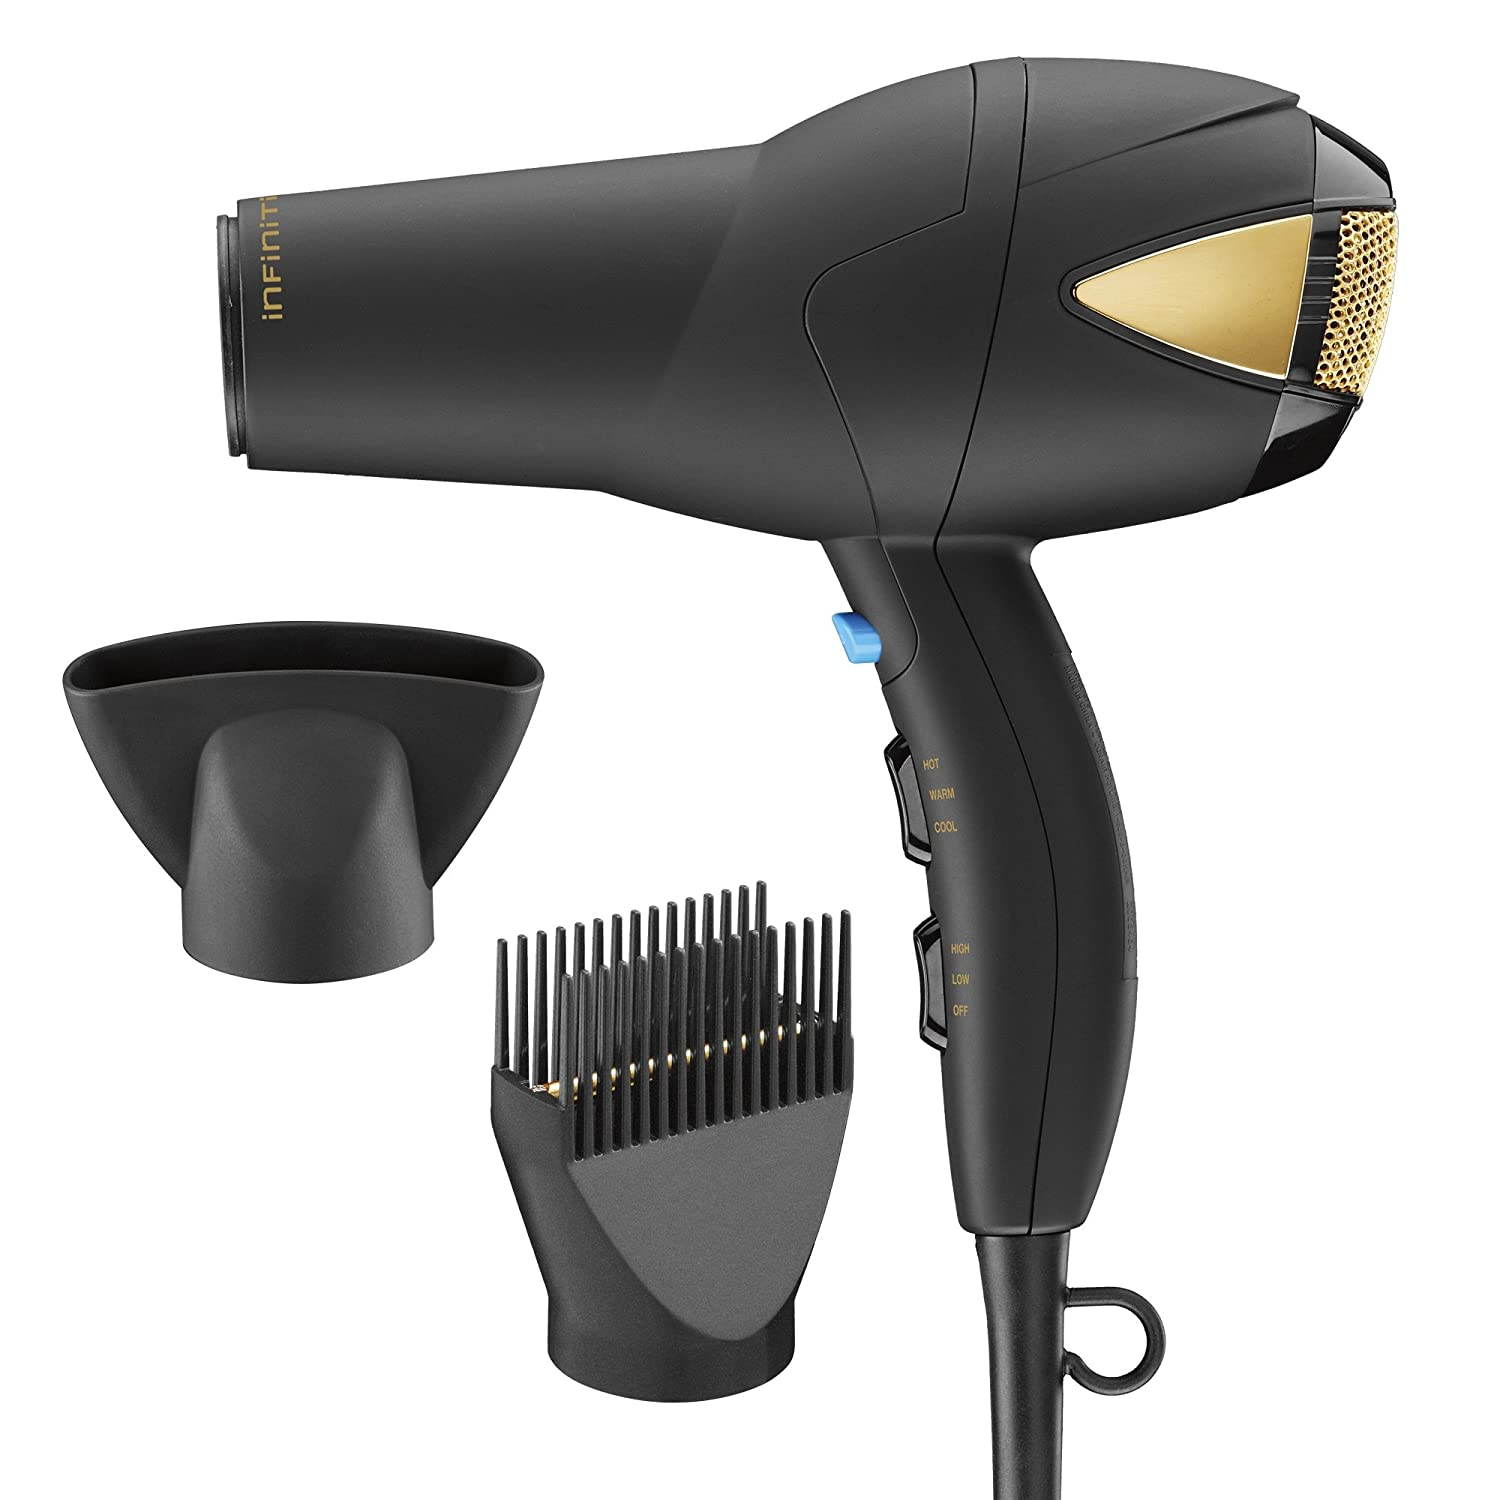 INFINITIPRO BY CONAIR GOLD 1875 Watt Styling Tool